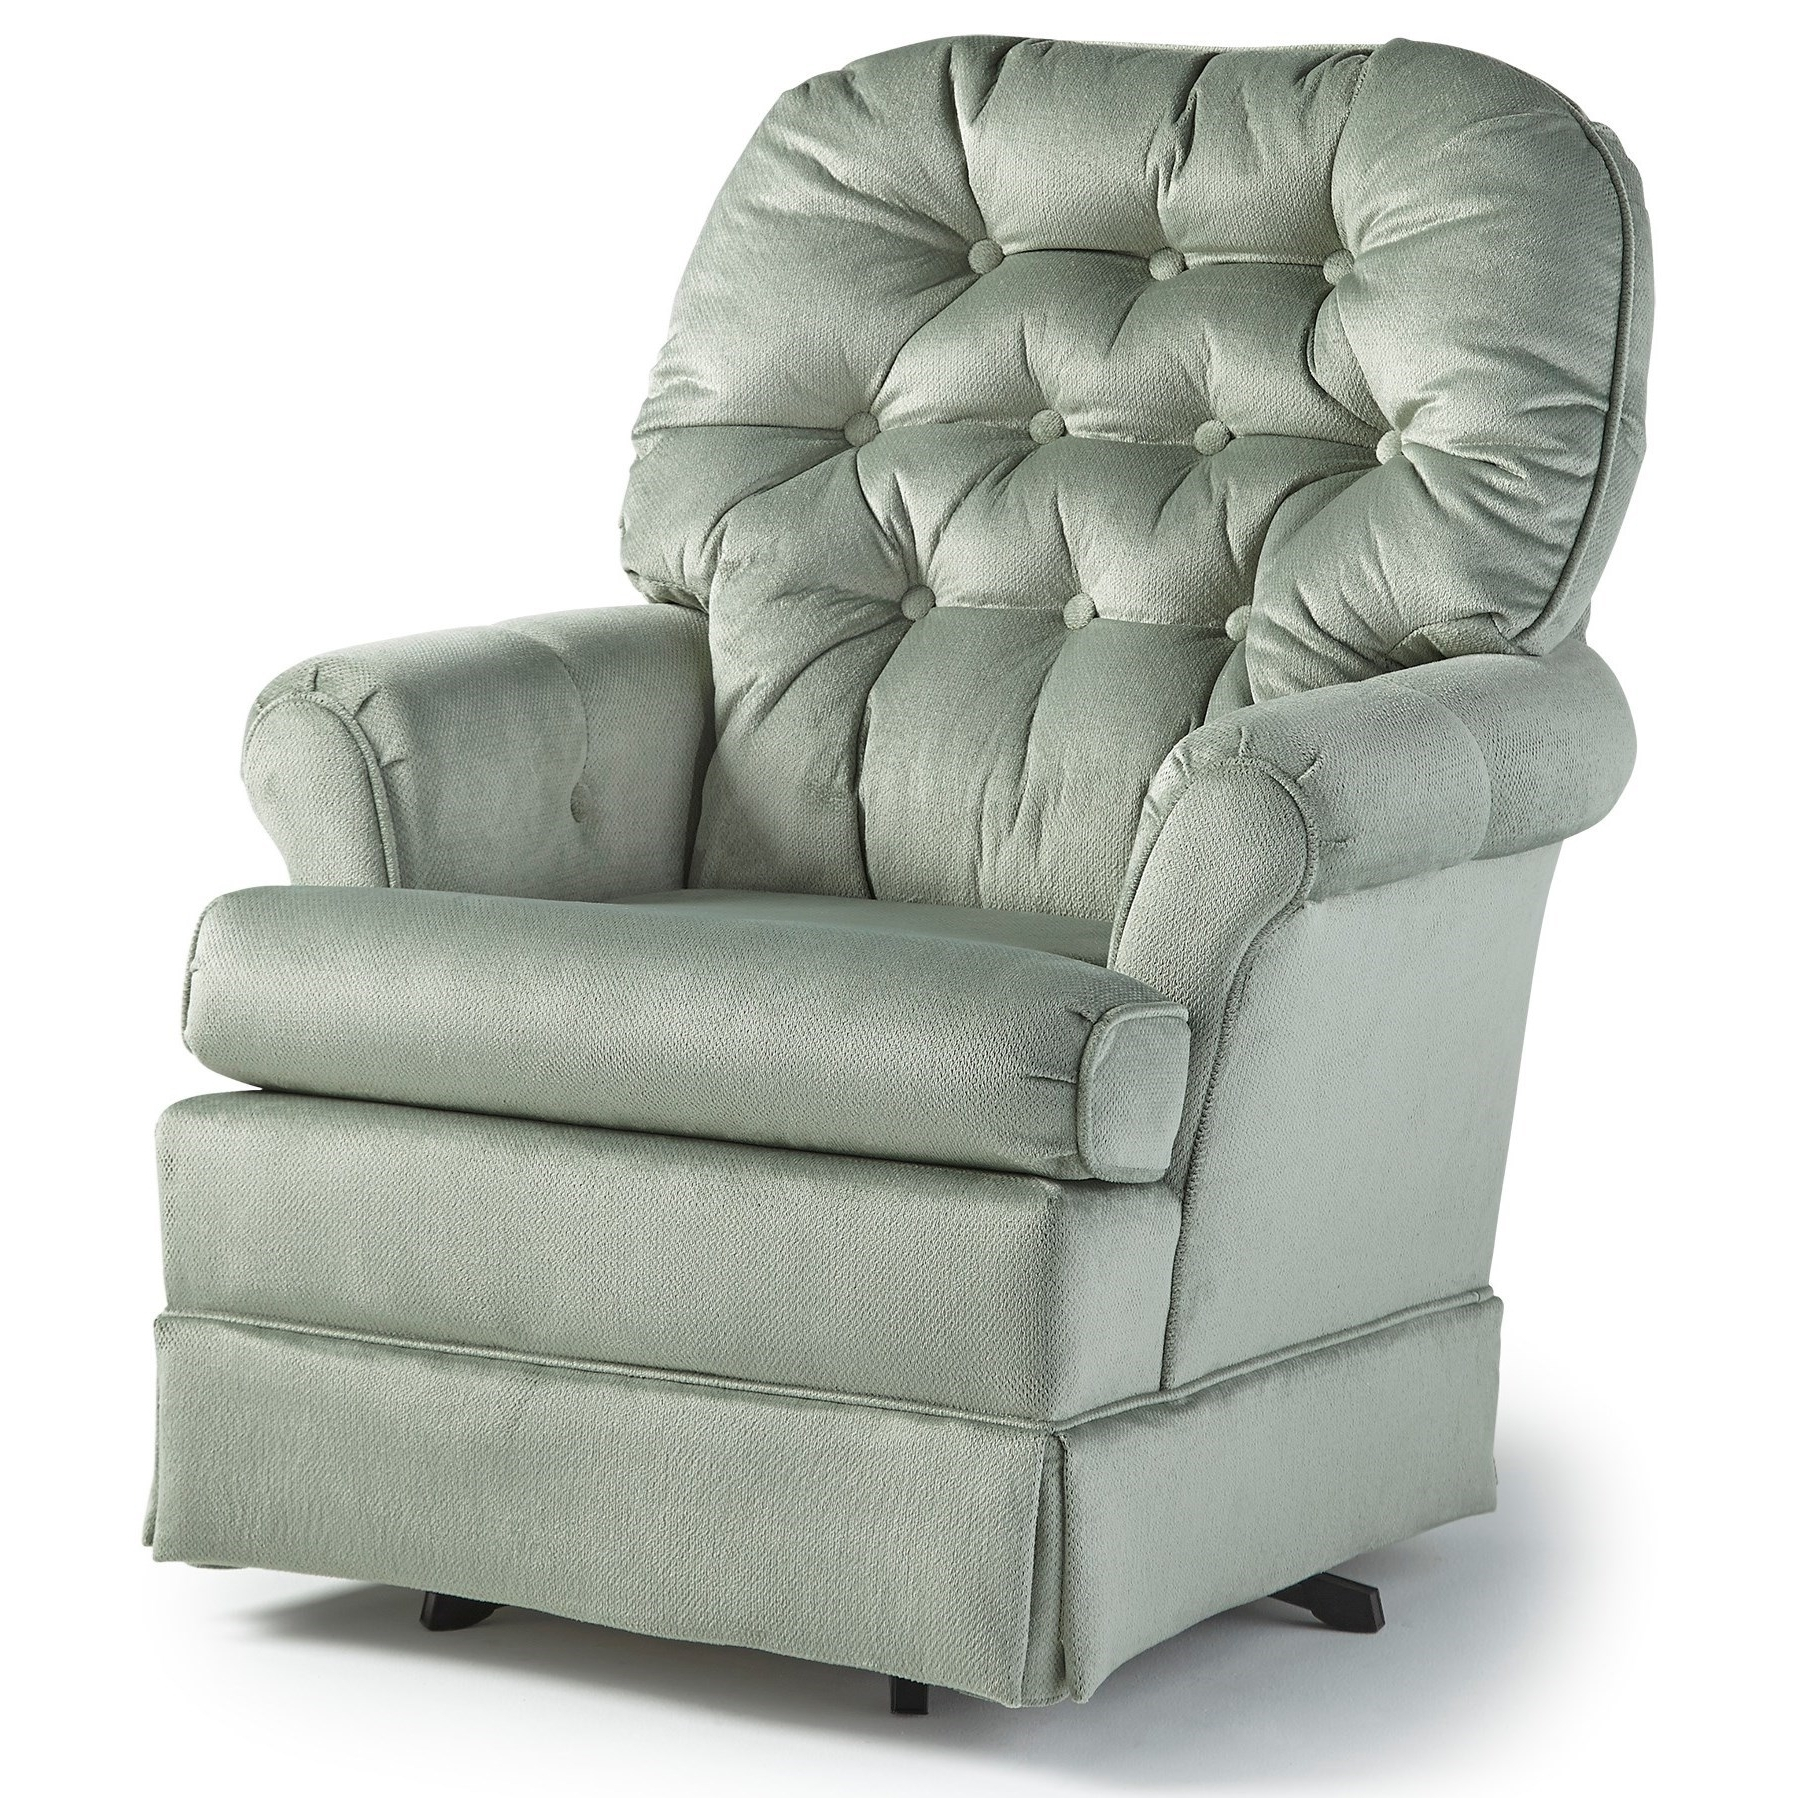 Best Home Furnishings Swivel Glide Chairs 1559 Marla Swivel Rocker In Popular Swivel Rocking Chairs (View 4 of 20)